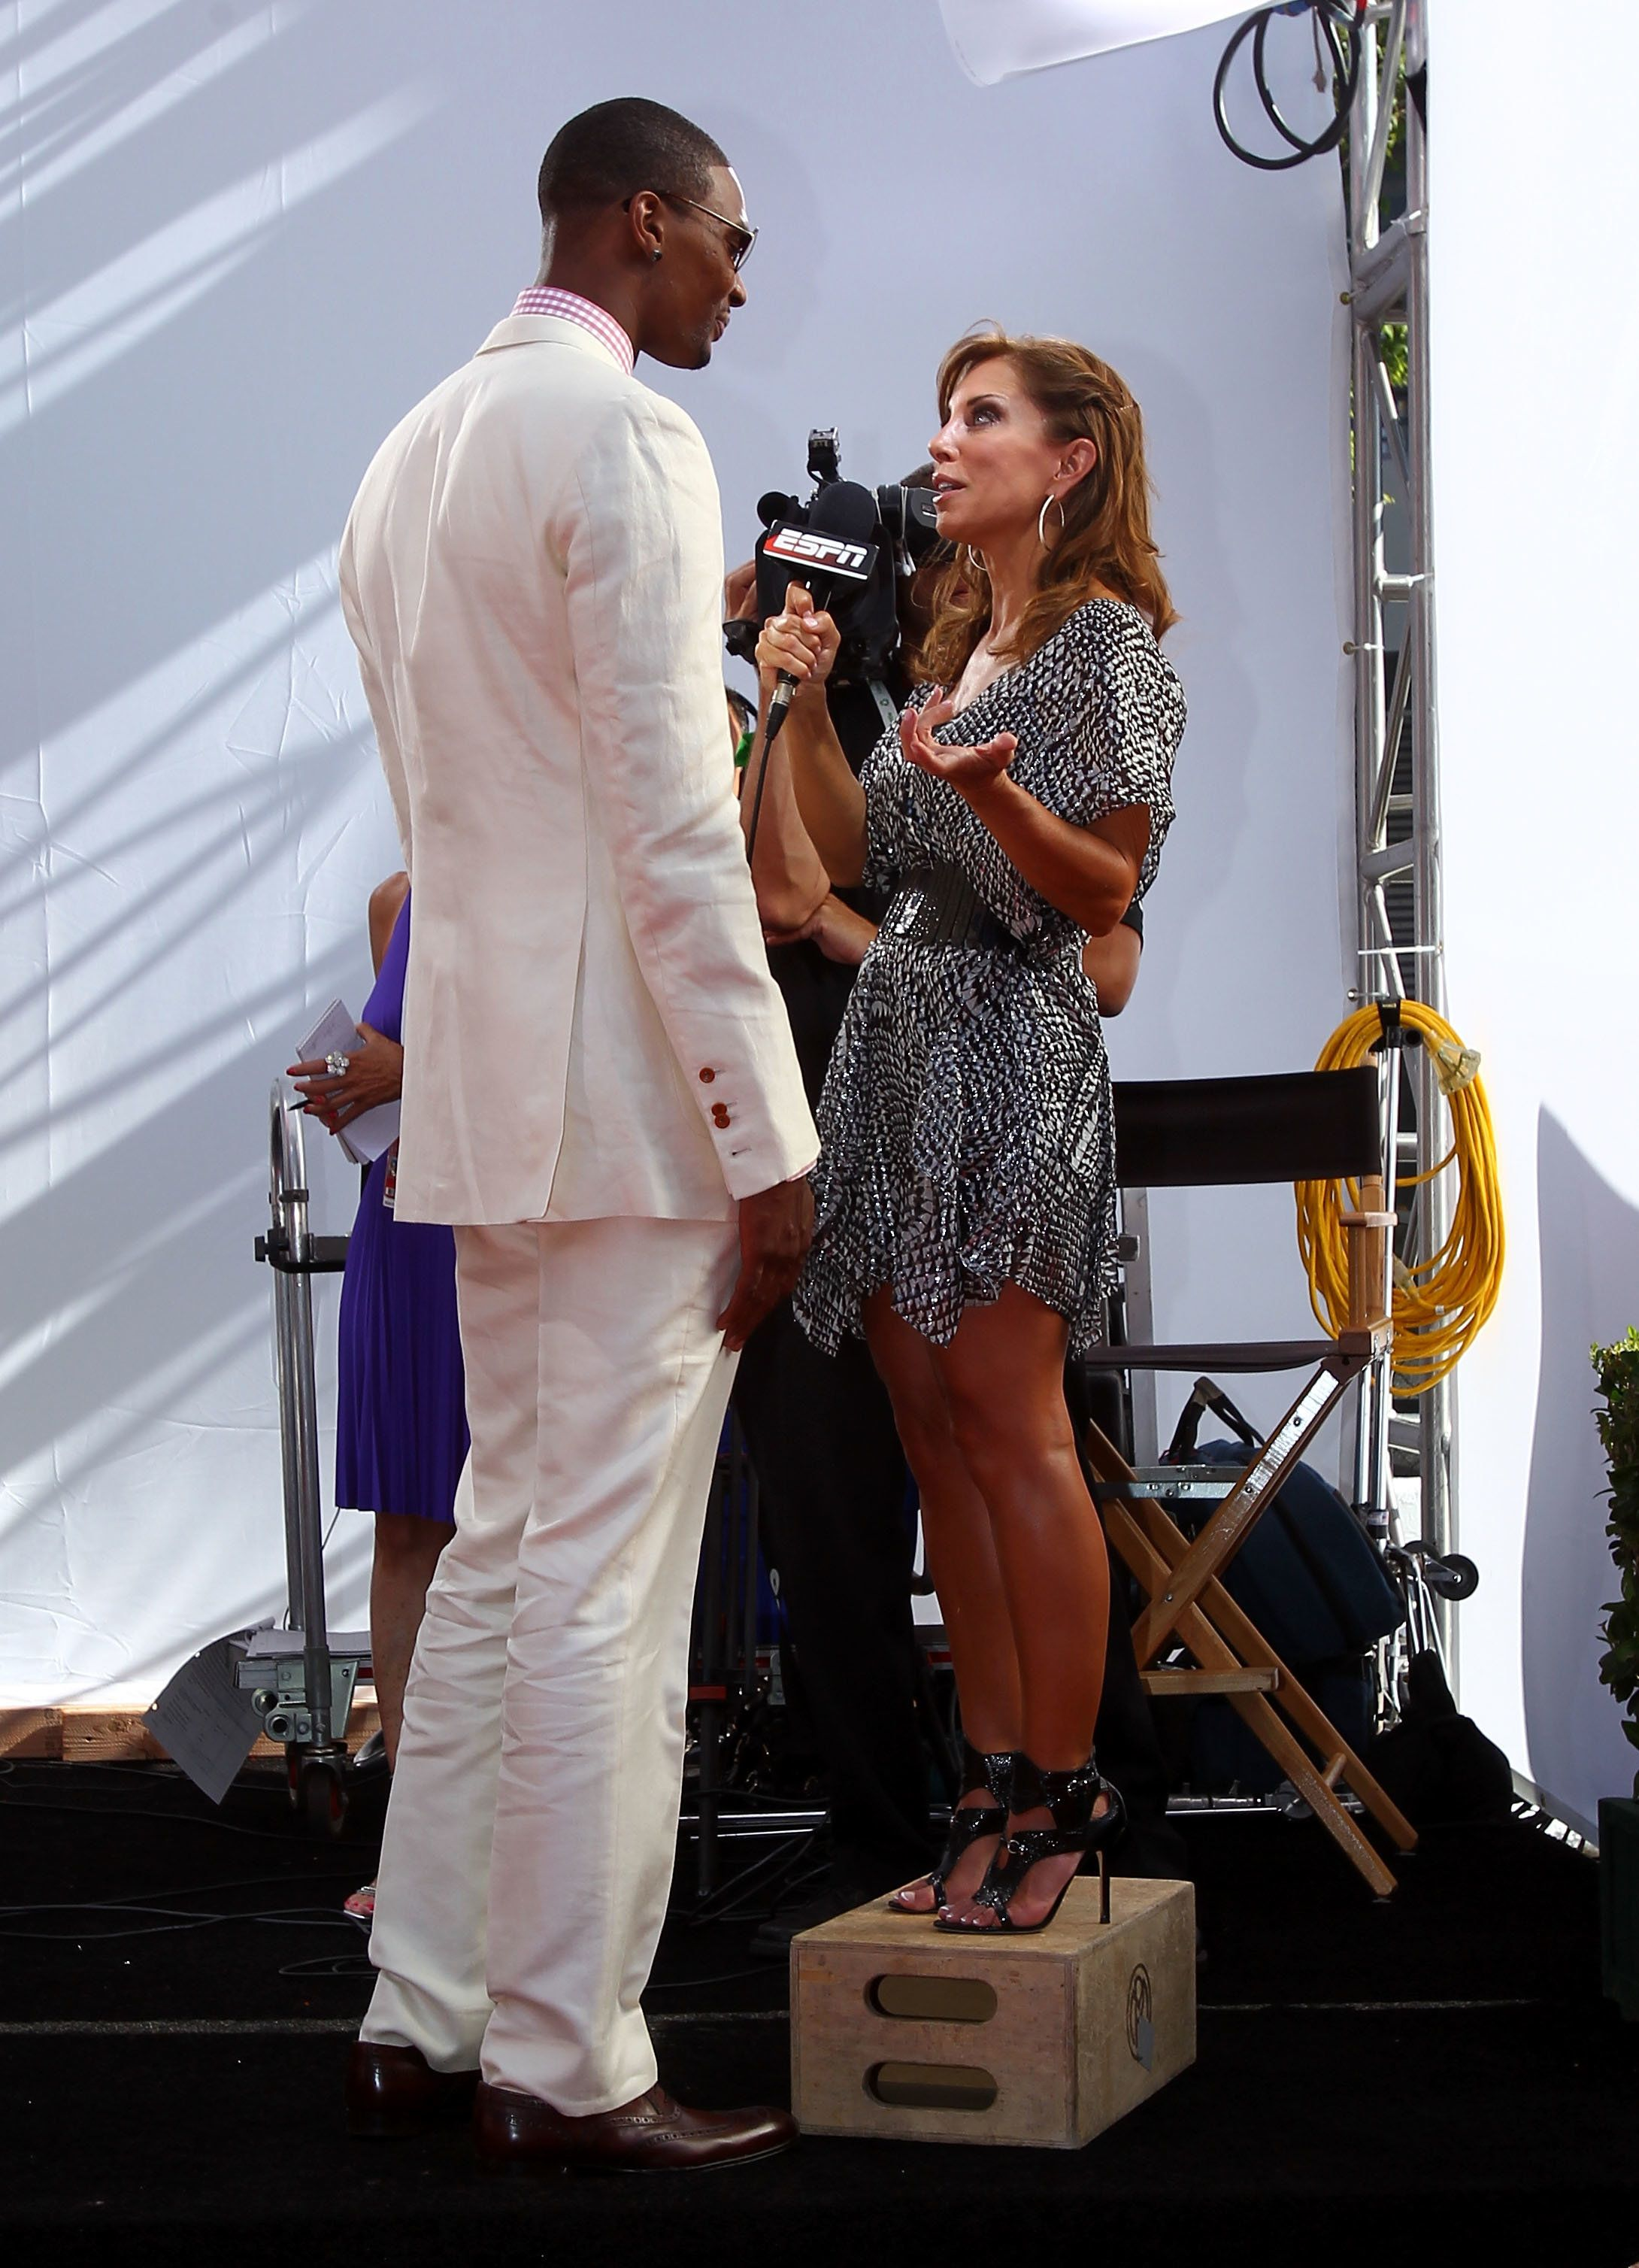 LOS ANGELES, CA - JULY 14:  Chris Bosh of the Miami Heat talks with Colleen Dominguez of ESPN at the 2010 ESPY Awards at Nokia Theatre L.A. Live on July 14, 2010 in Los Angeles, California.  (Photo by Alexandra Wyman/Getty Images for ESPY)